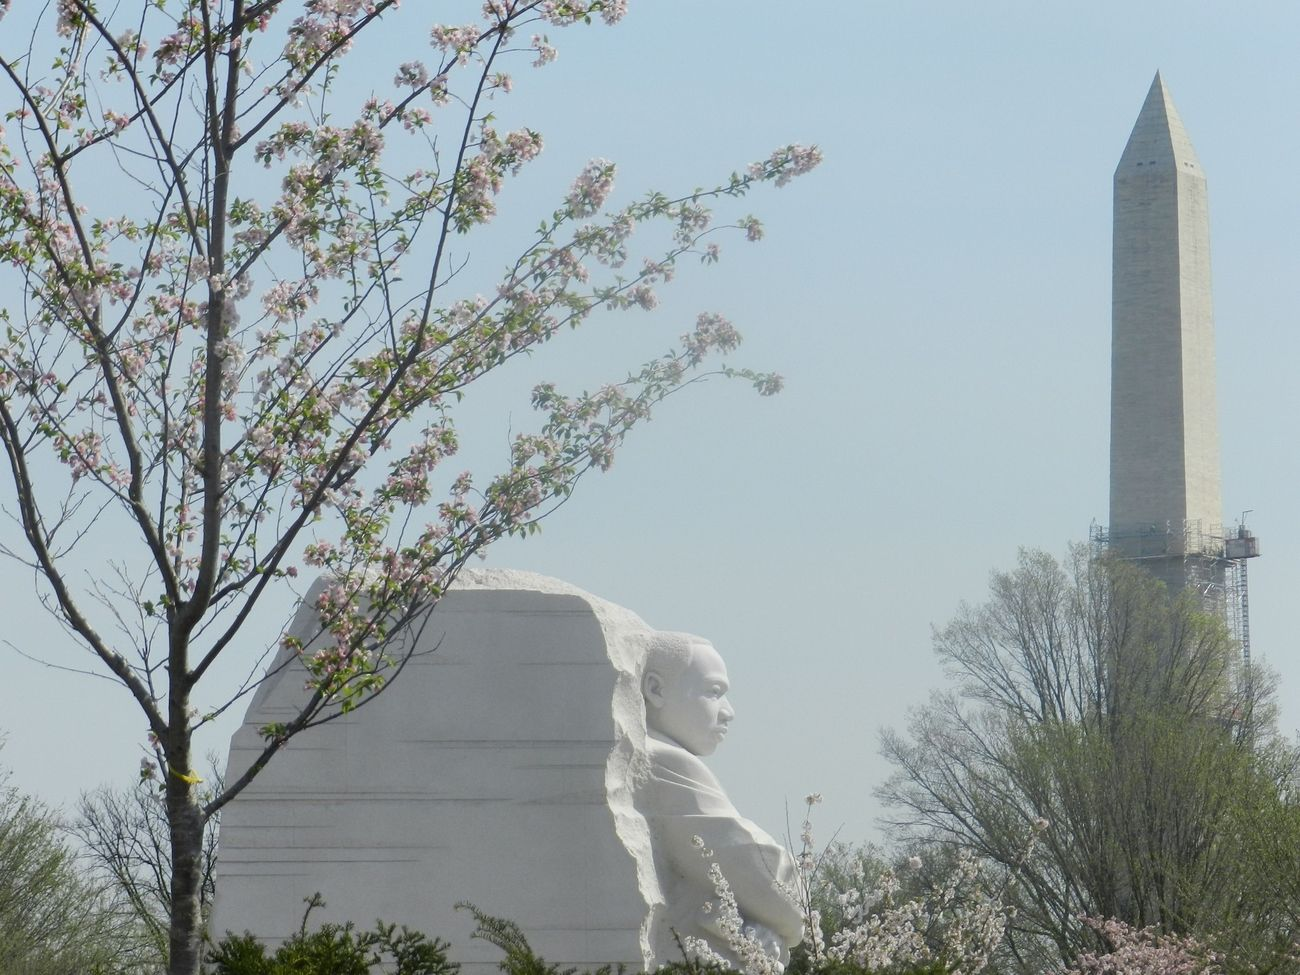 Martin Luther King Jr. Statue from a Distance